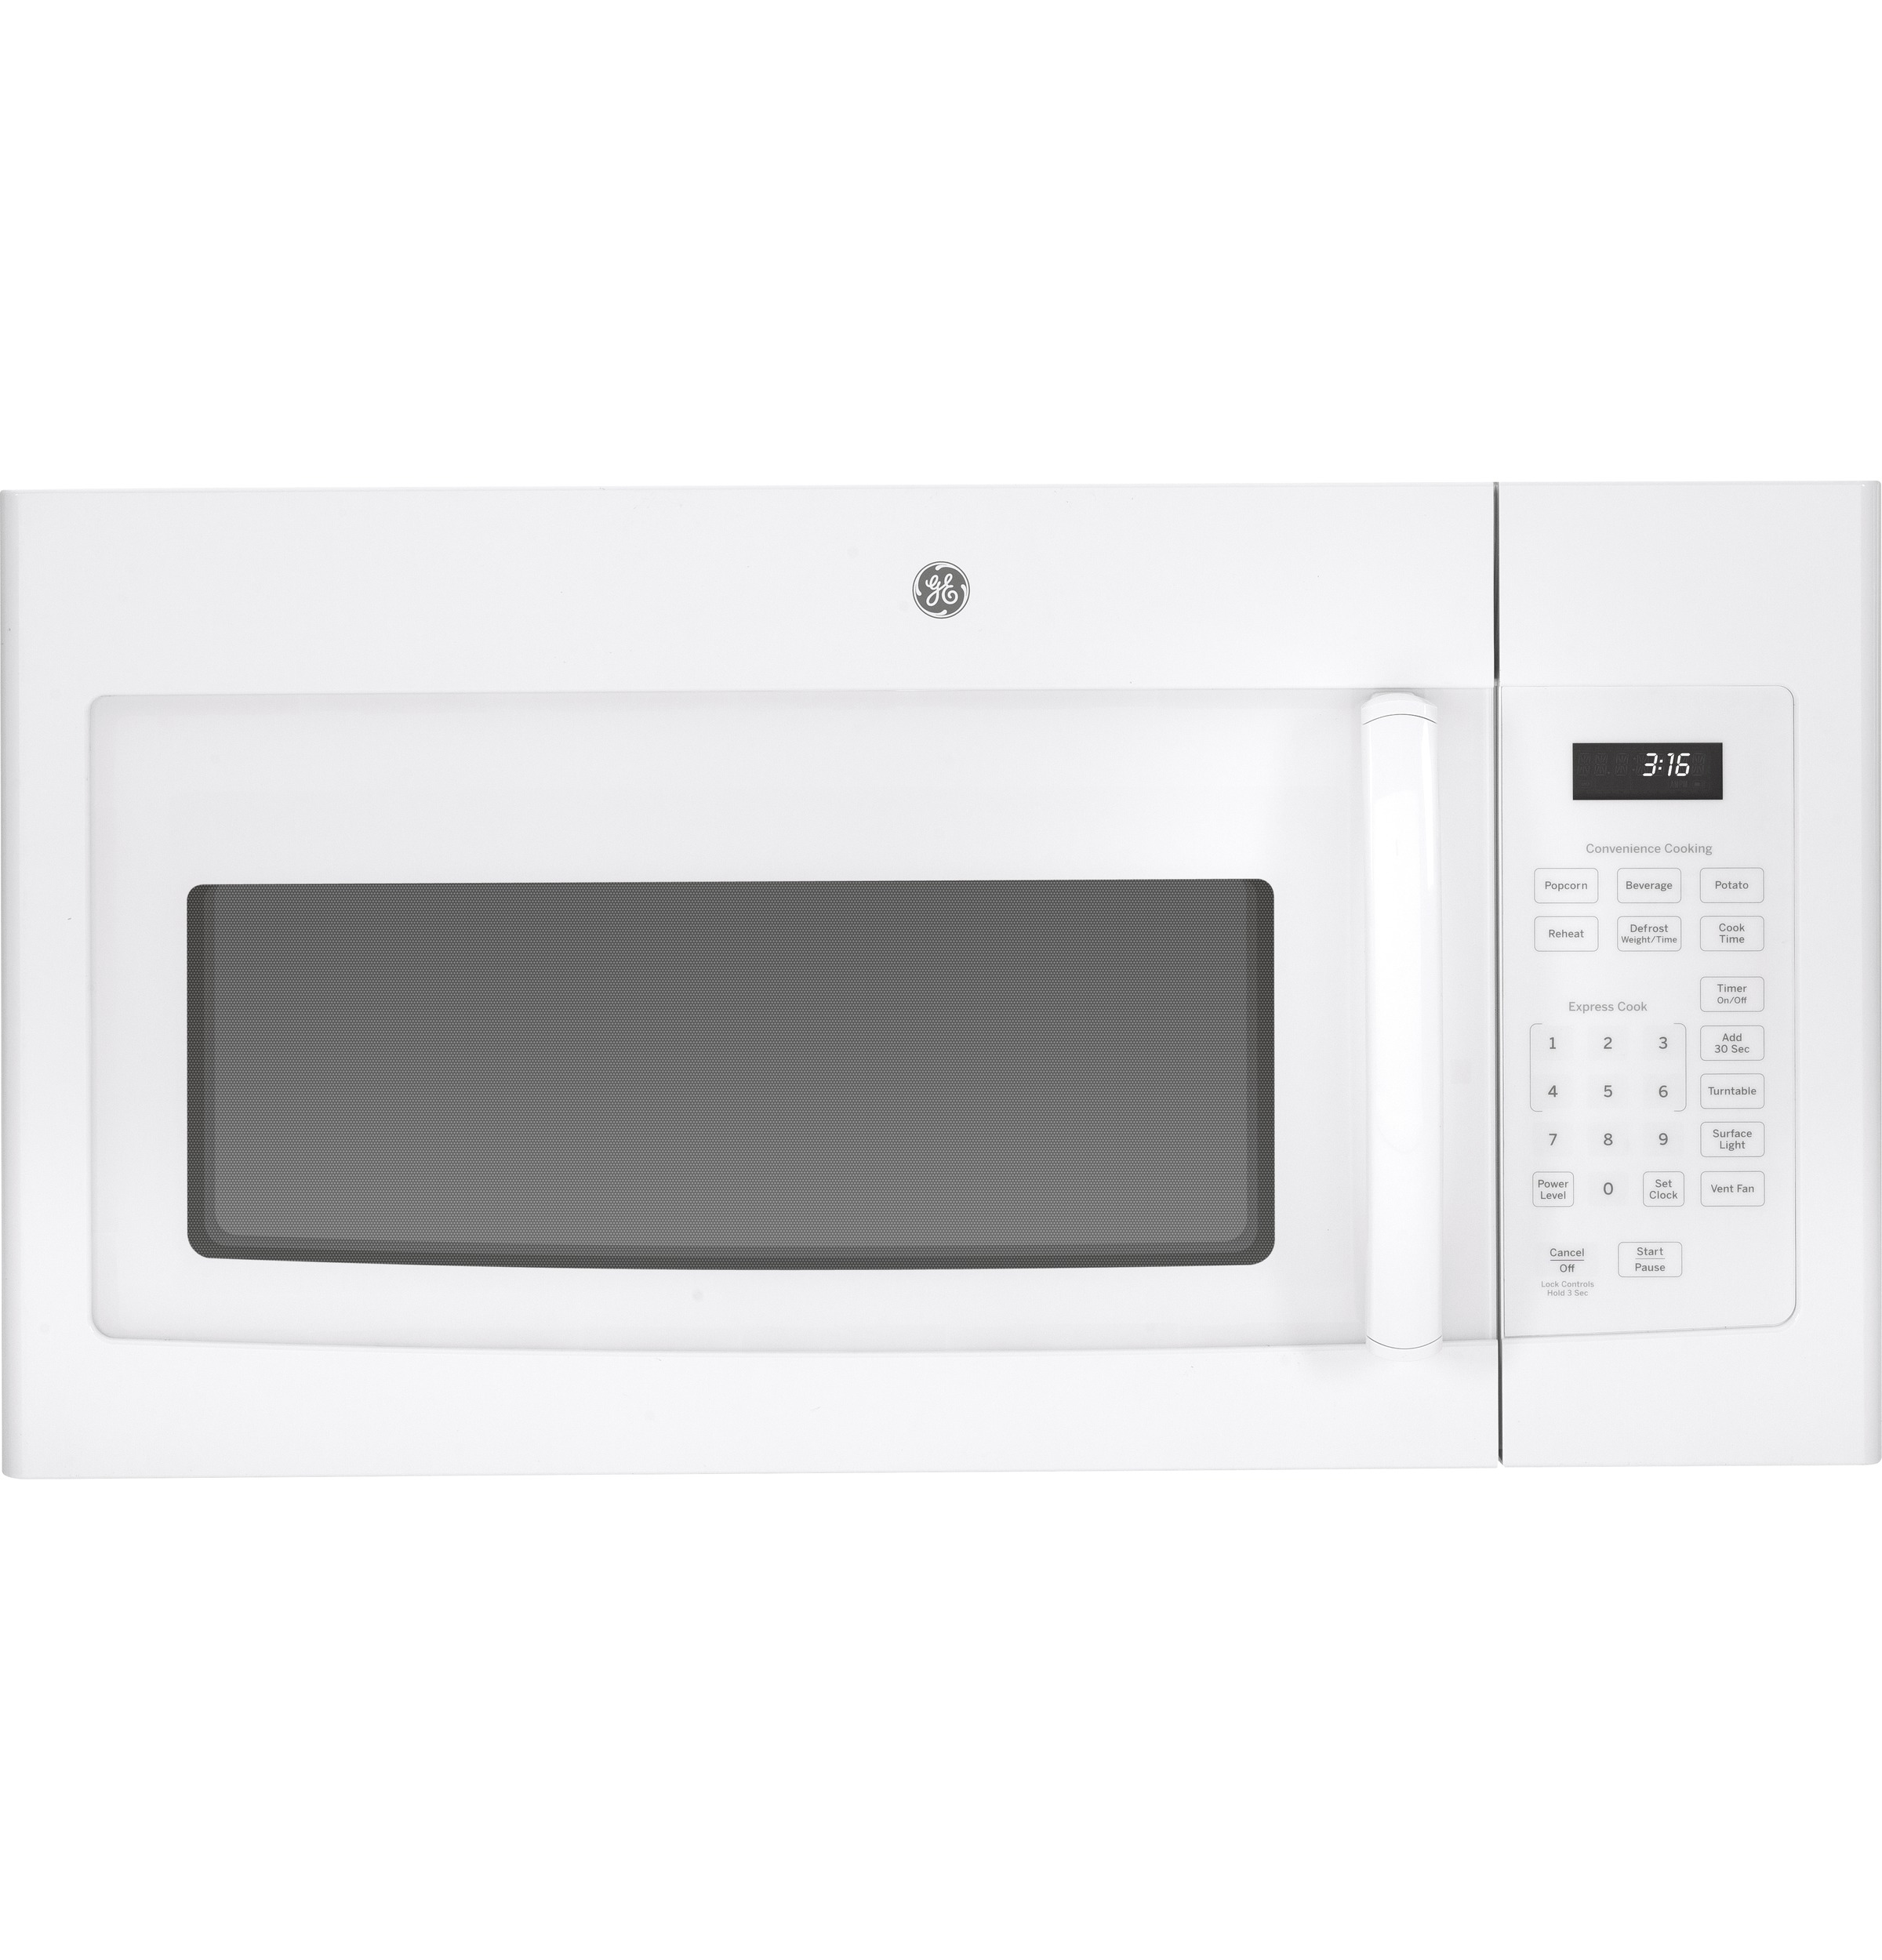 Ge 16 Cu Ft Over The Range Microwave Oven Jvm3160dfww Spacemaker Replacement Parts Motor Repalcement And Diagram Product Image